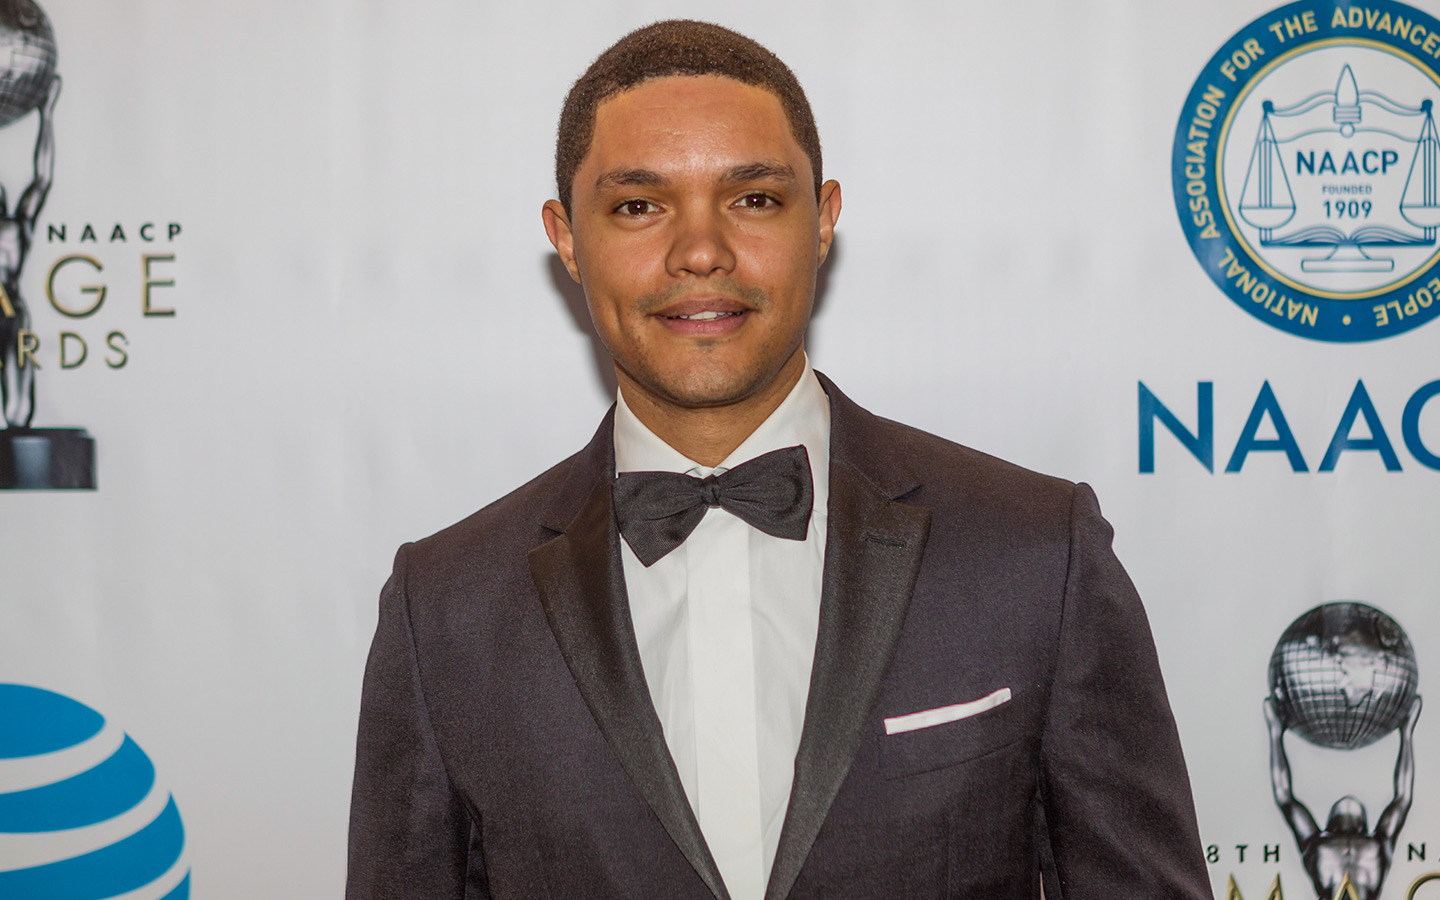 Image of Trevor Noah, who will be performing in Abu Dhabi in 2019